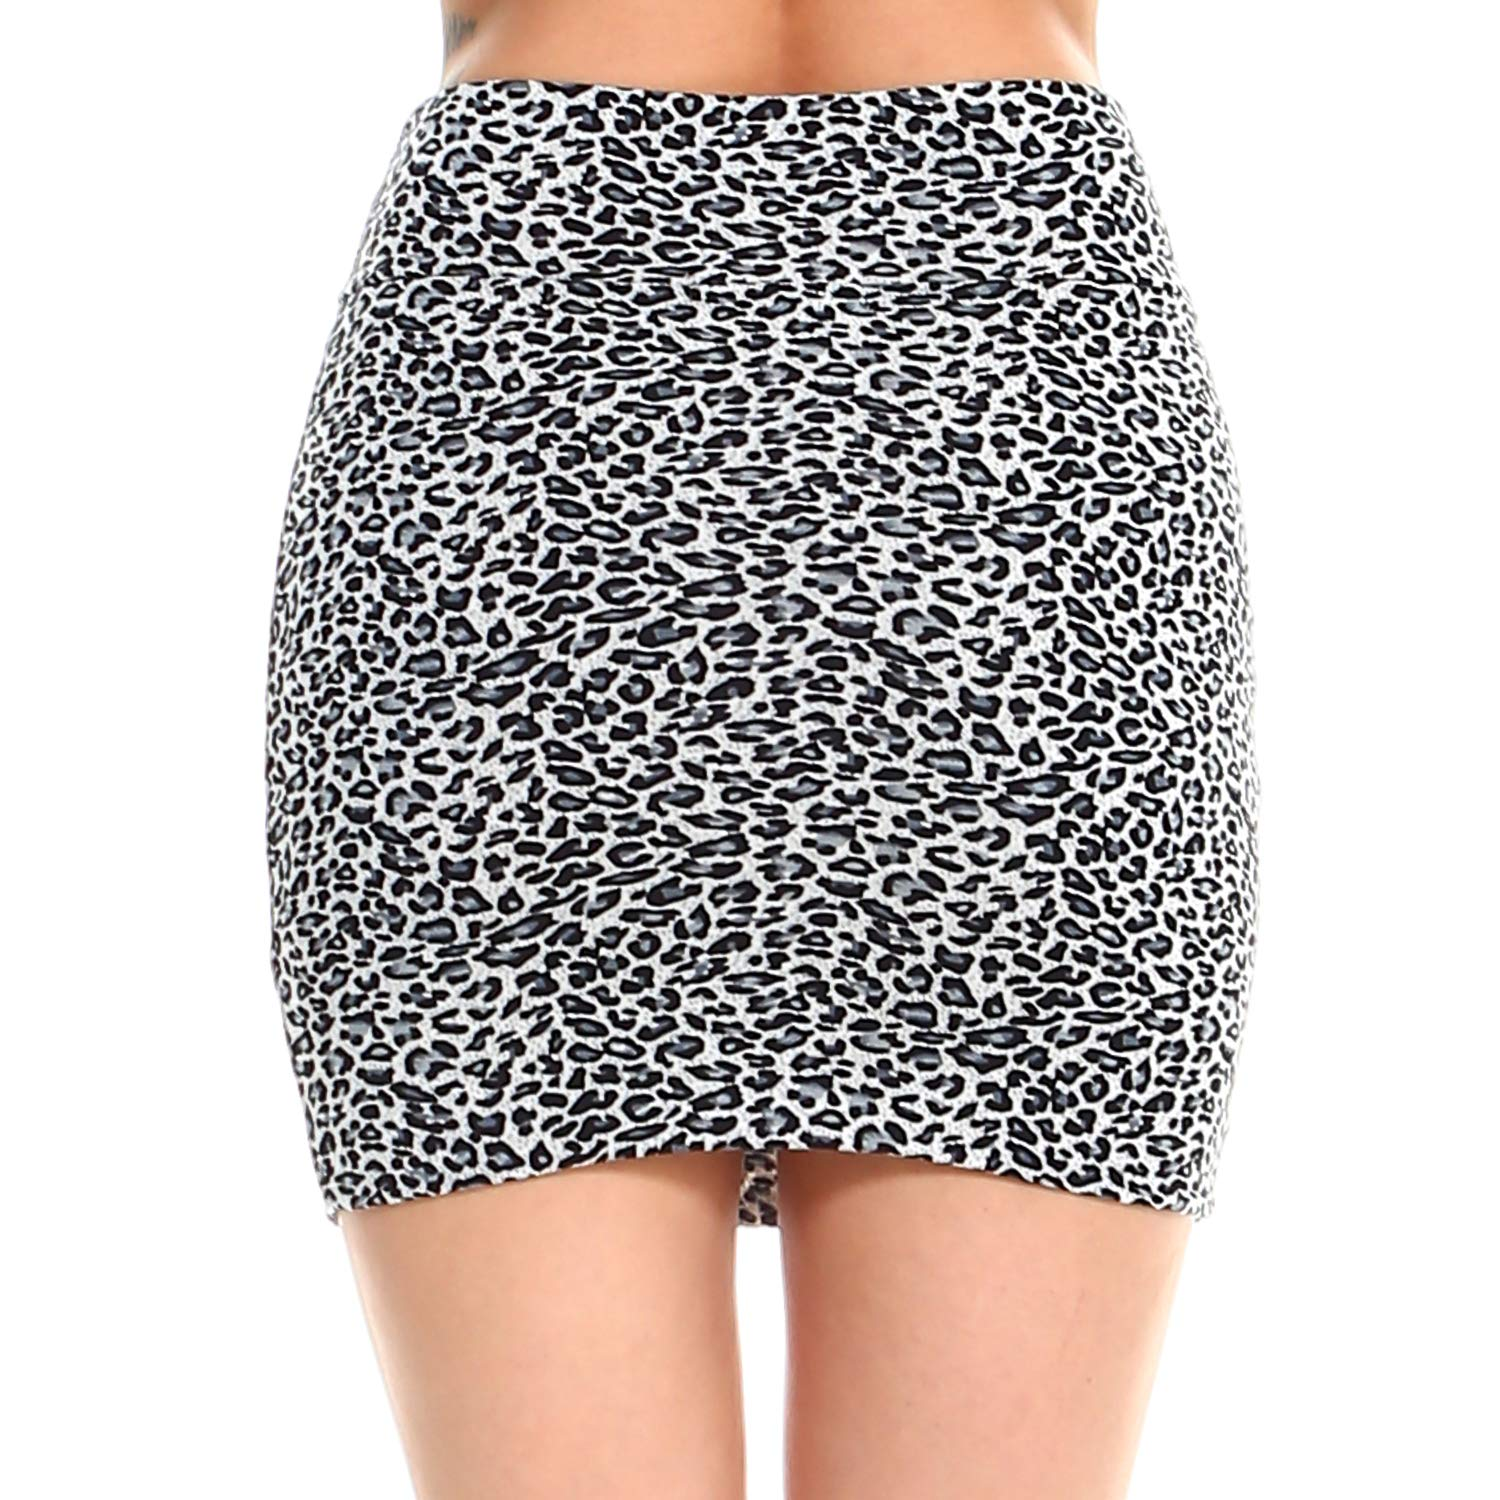 321b7456c9 Fashionazzle Women's Casual Stretchy Bodycon Pencil Mini Skirt larger image